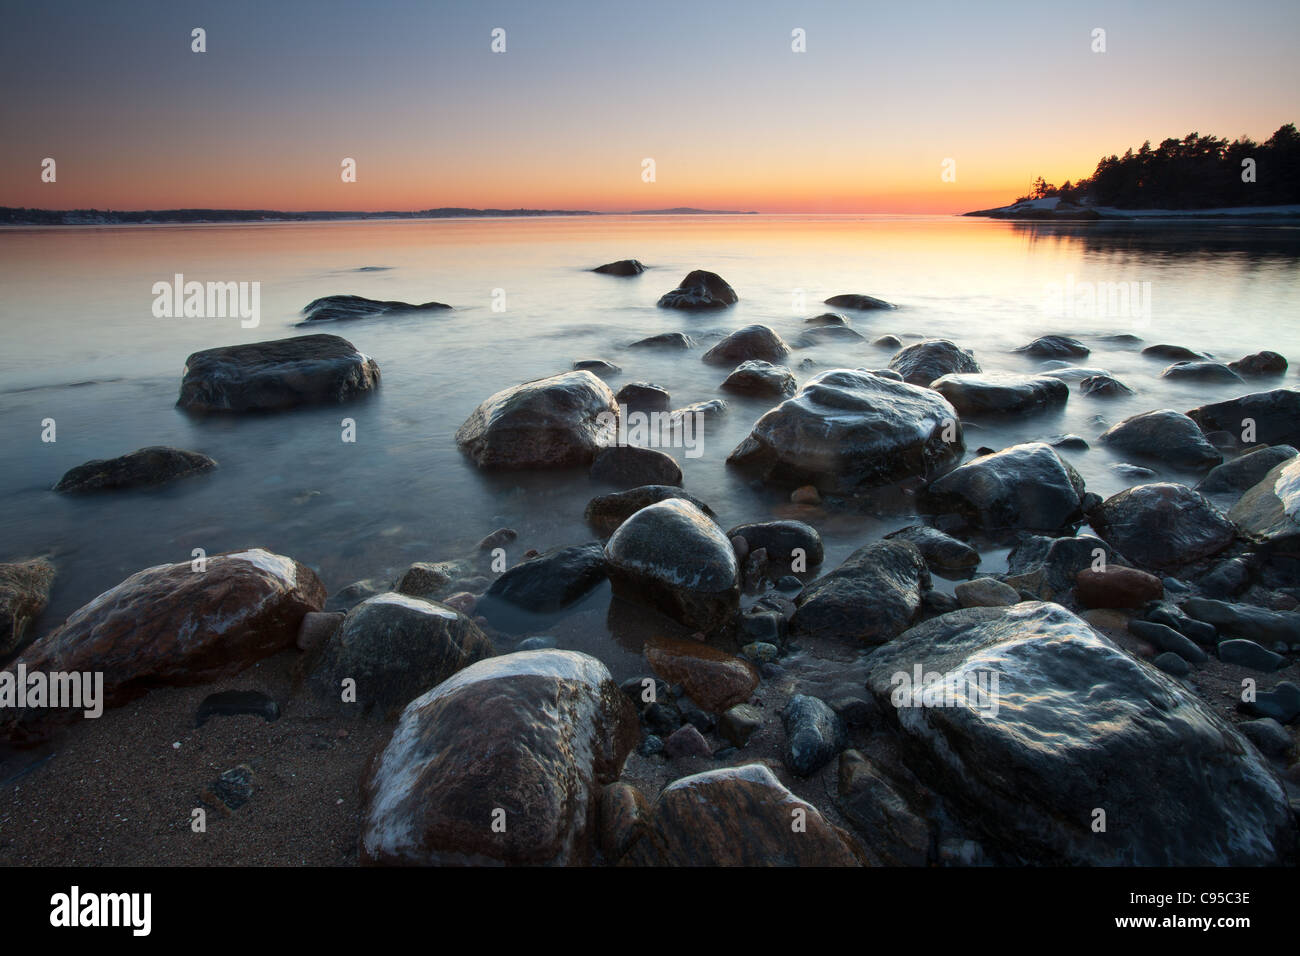 Coastal landscape at dusk at Oven, by the Oslofjord, in Råde kommune, Østfold fylke, Norway. - Stock Image